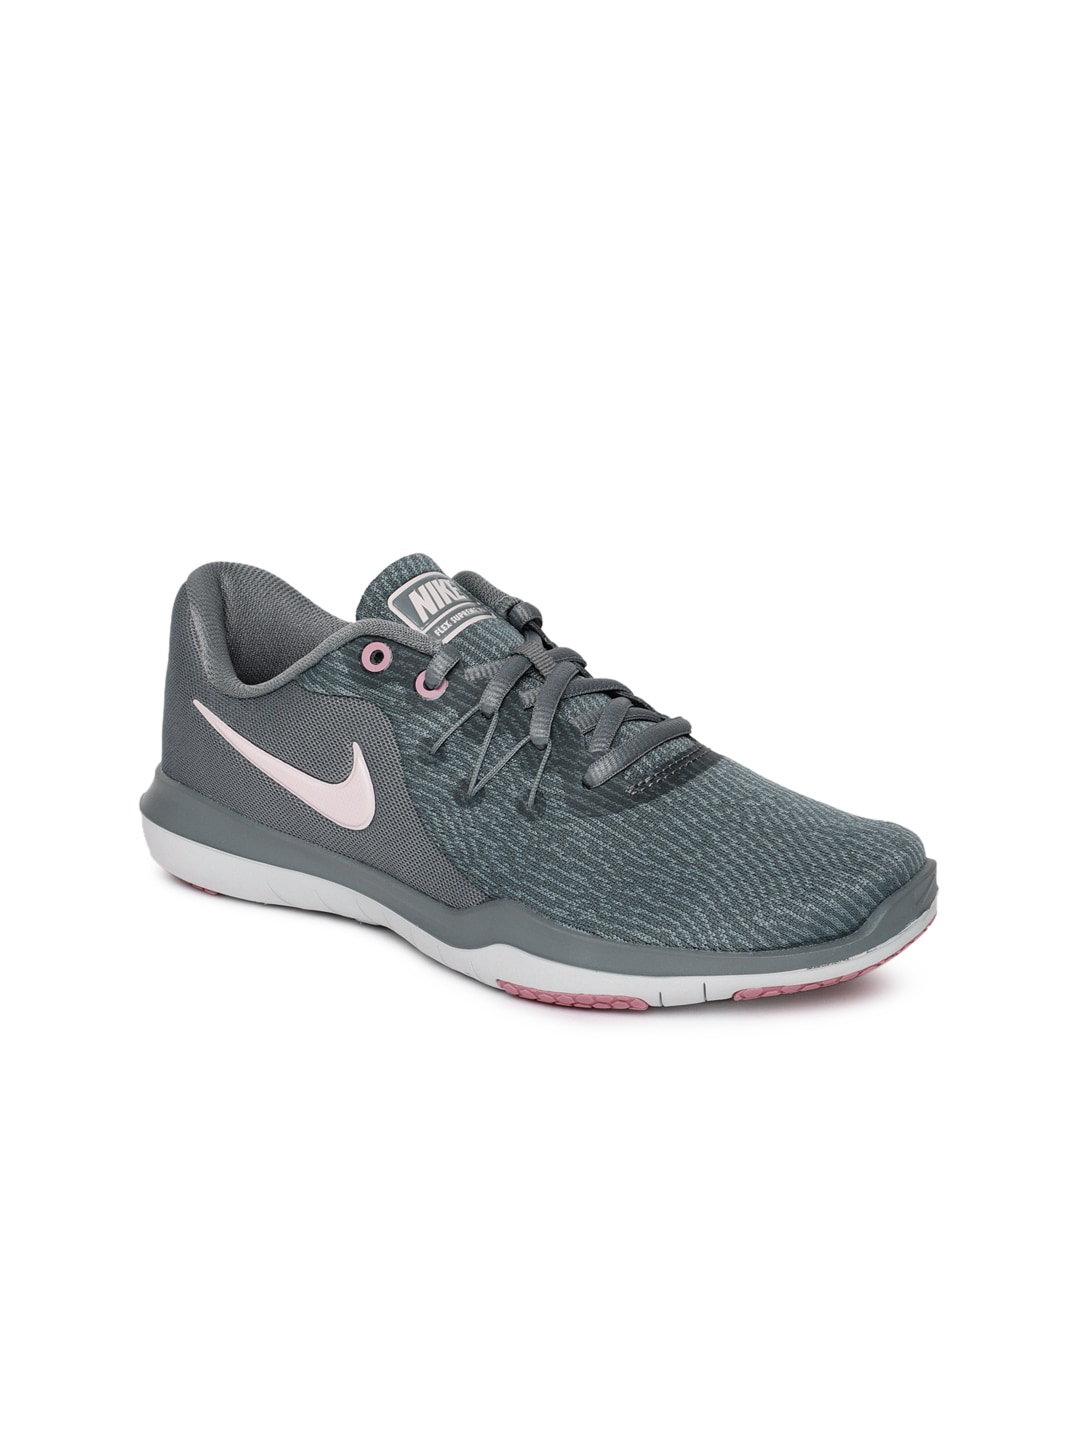 3edf923d45ea Tr 6 Nike Sports Shoes - Buy Tr 6 Nike Sports Shoes online in India